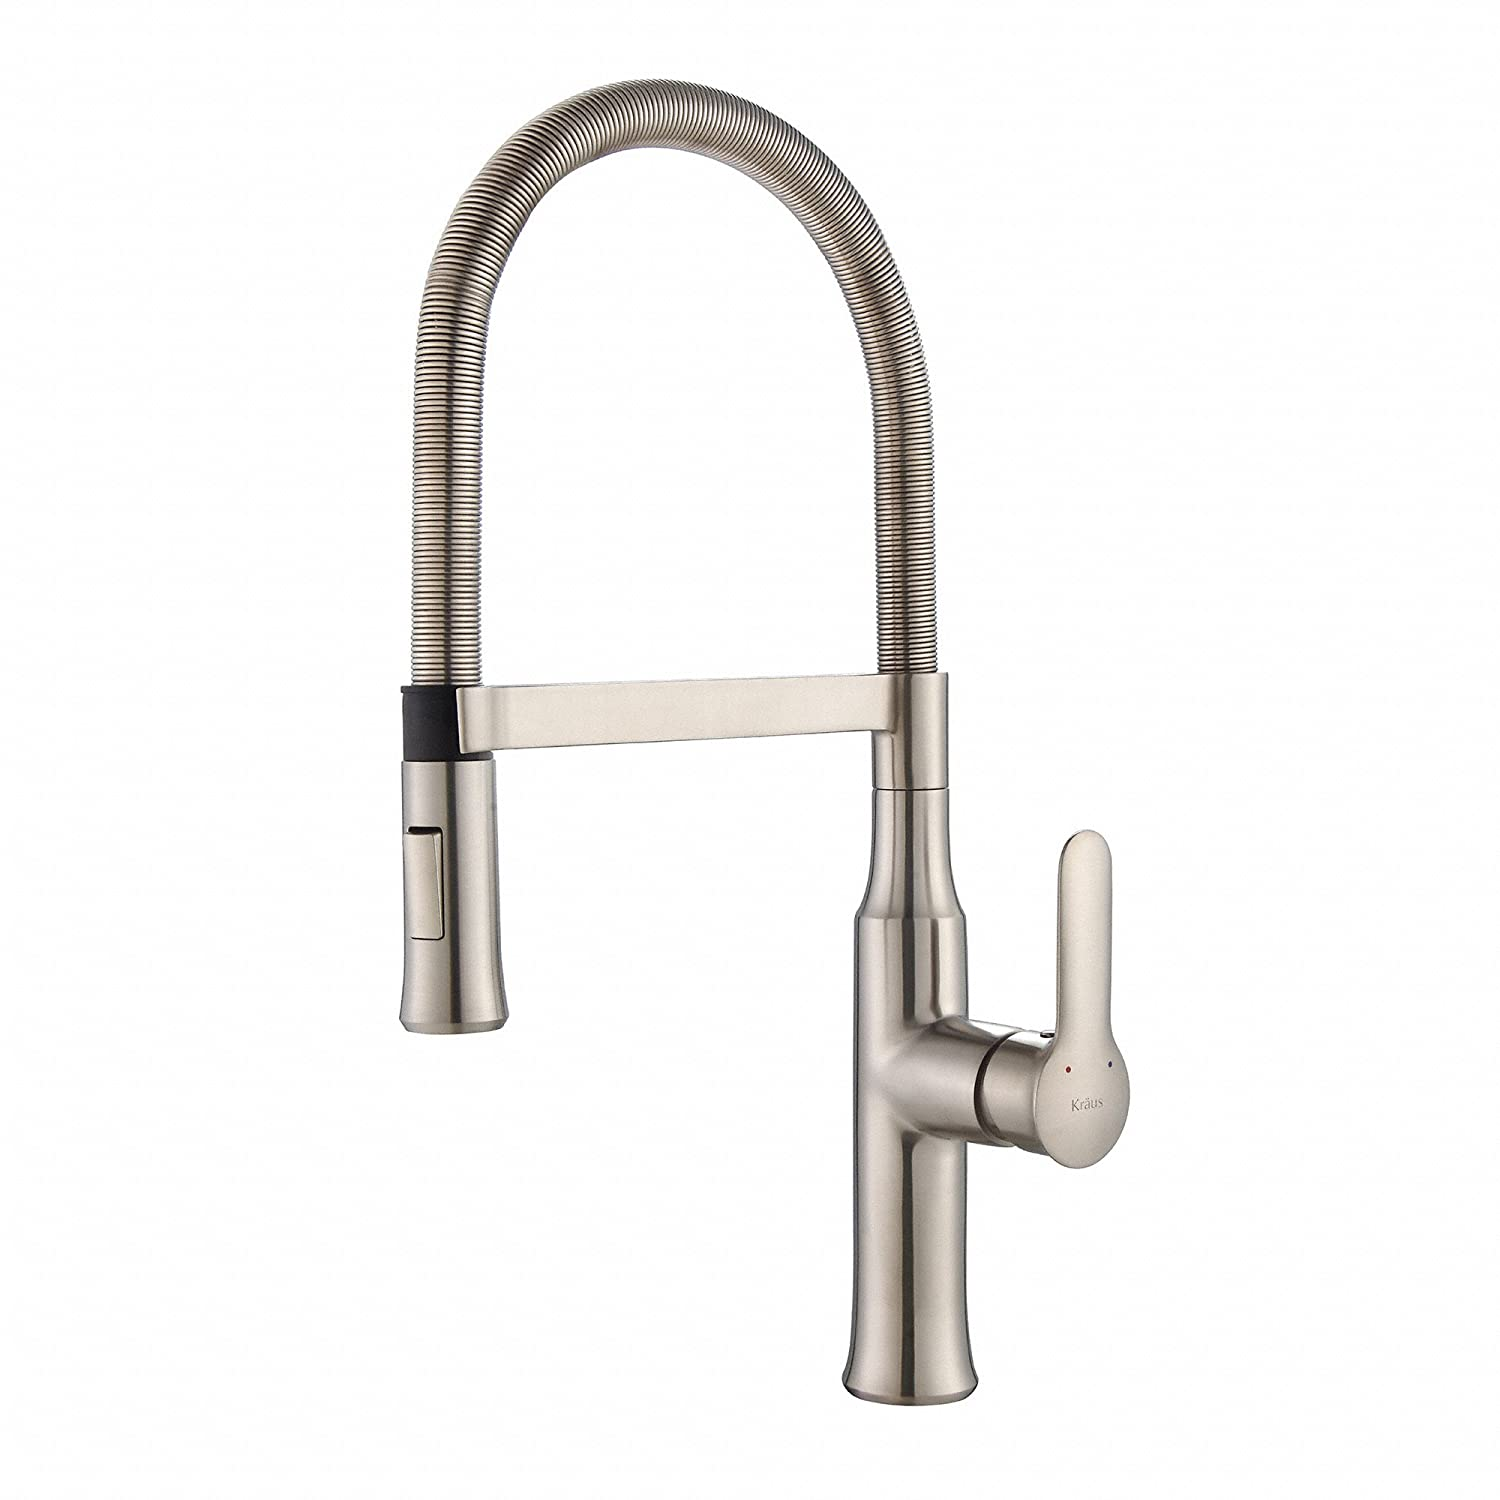 features stainless lead out imperial design faucet kitchen pull single hole faucets ariel free bar steel